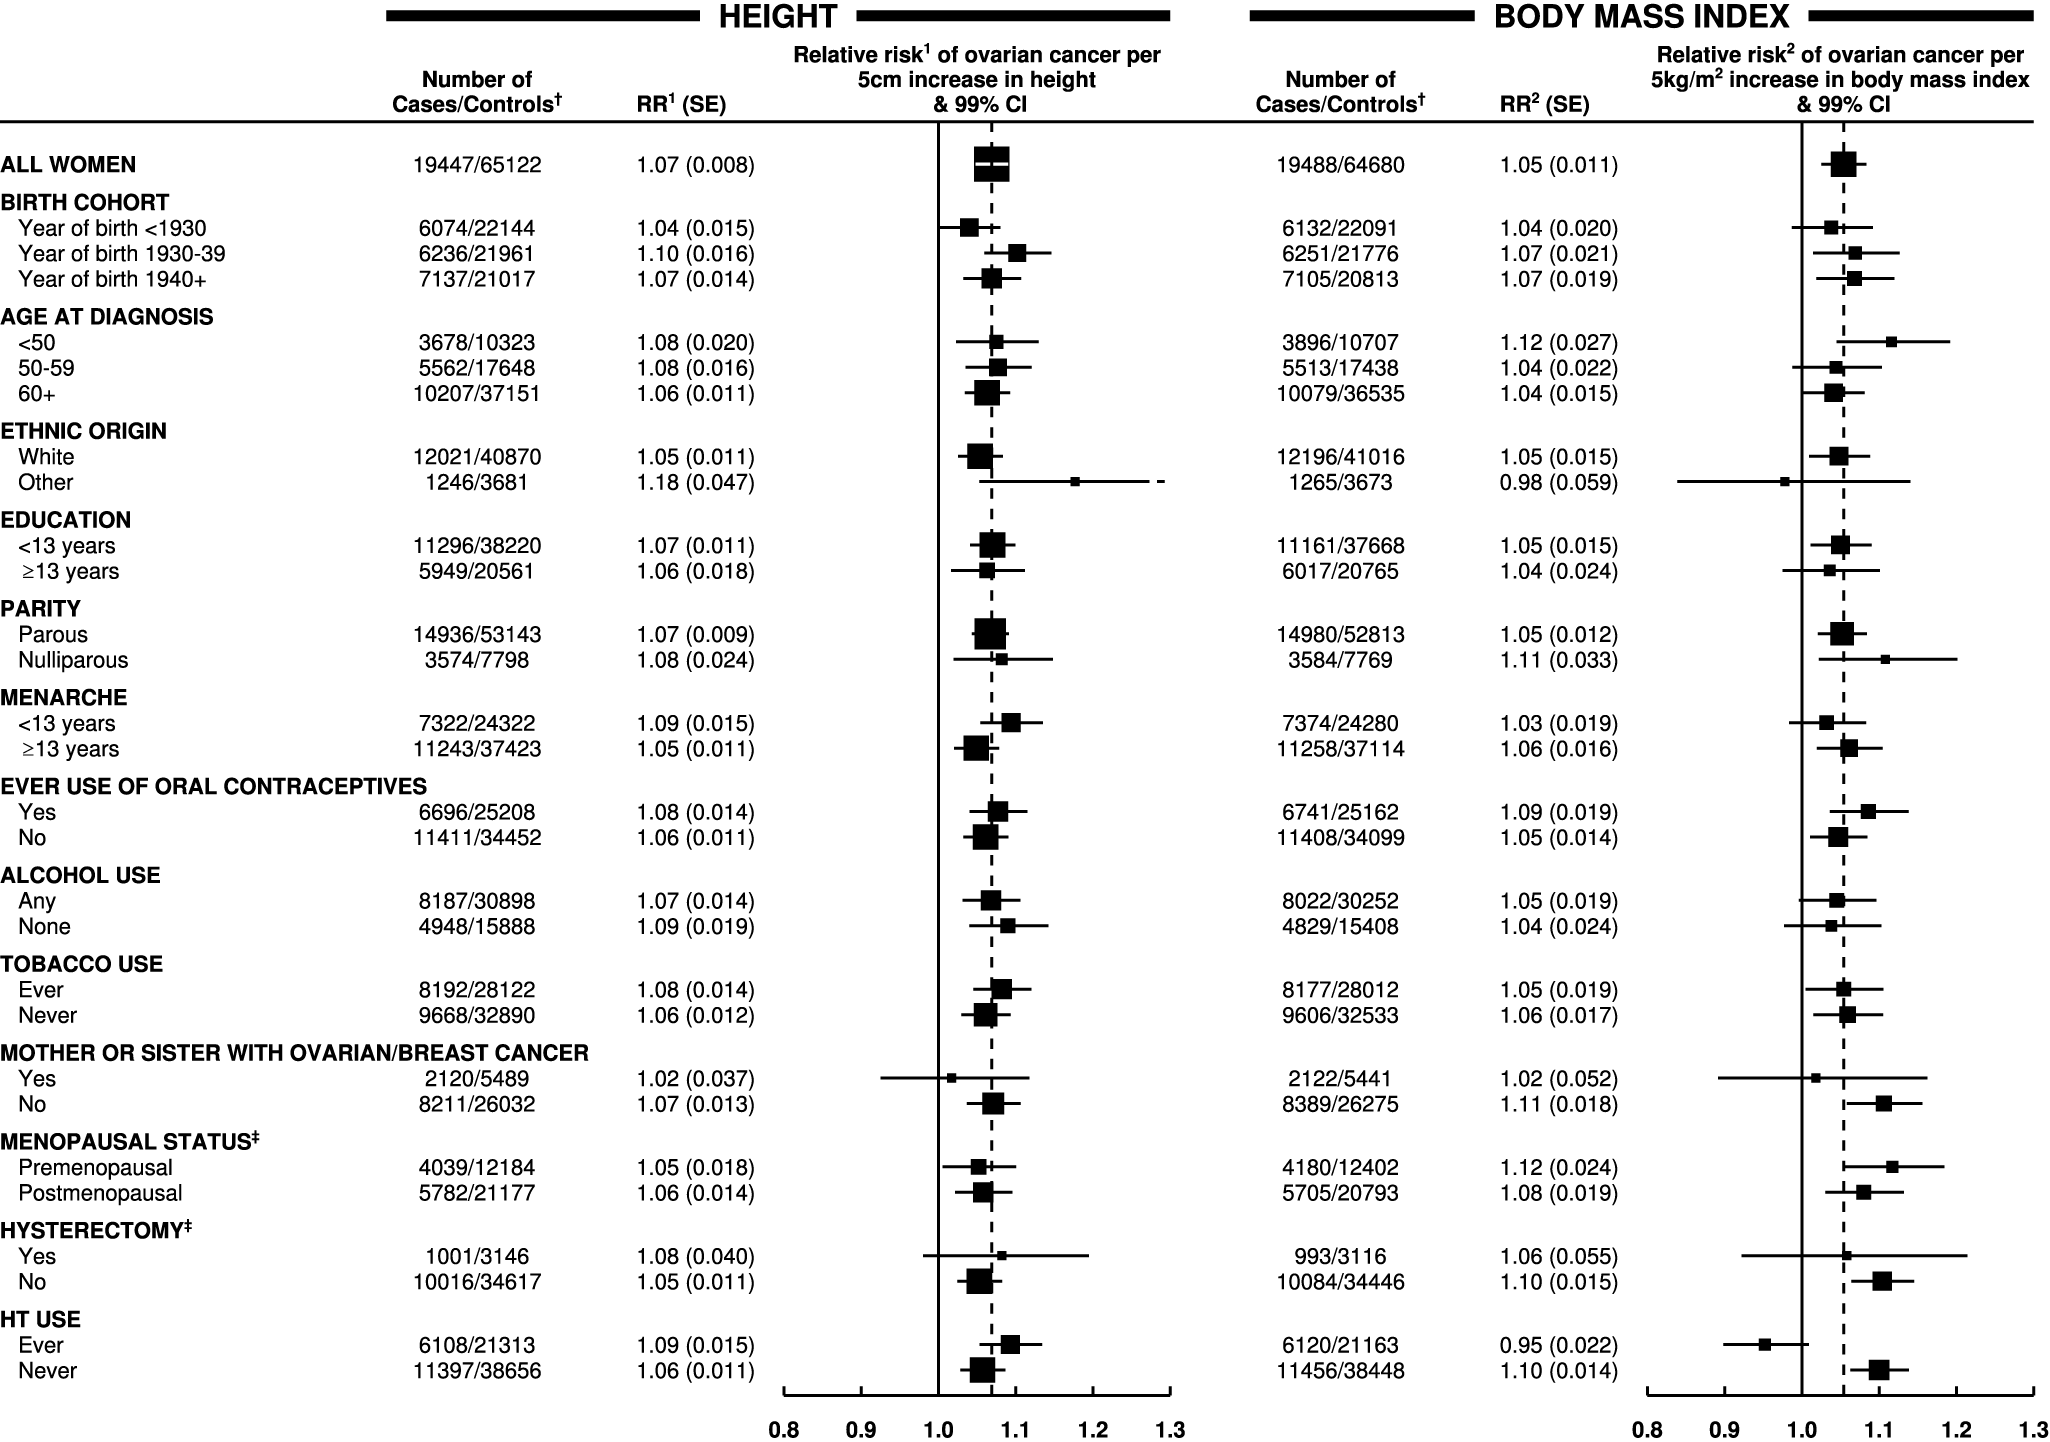 Relative risk of ovarian cancer in relation to height and BMI in various subgroups of women.